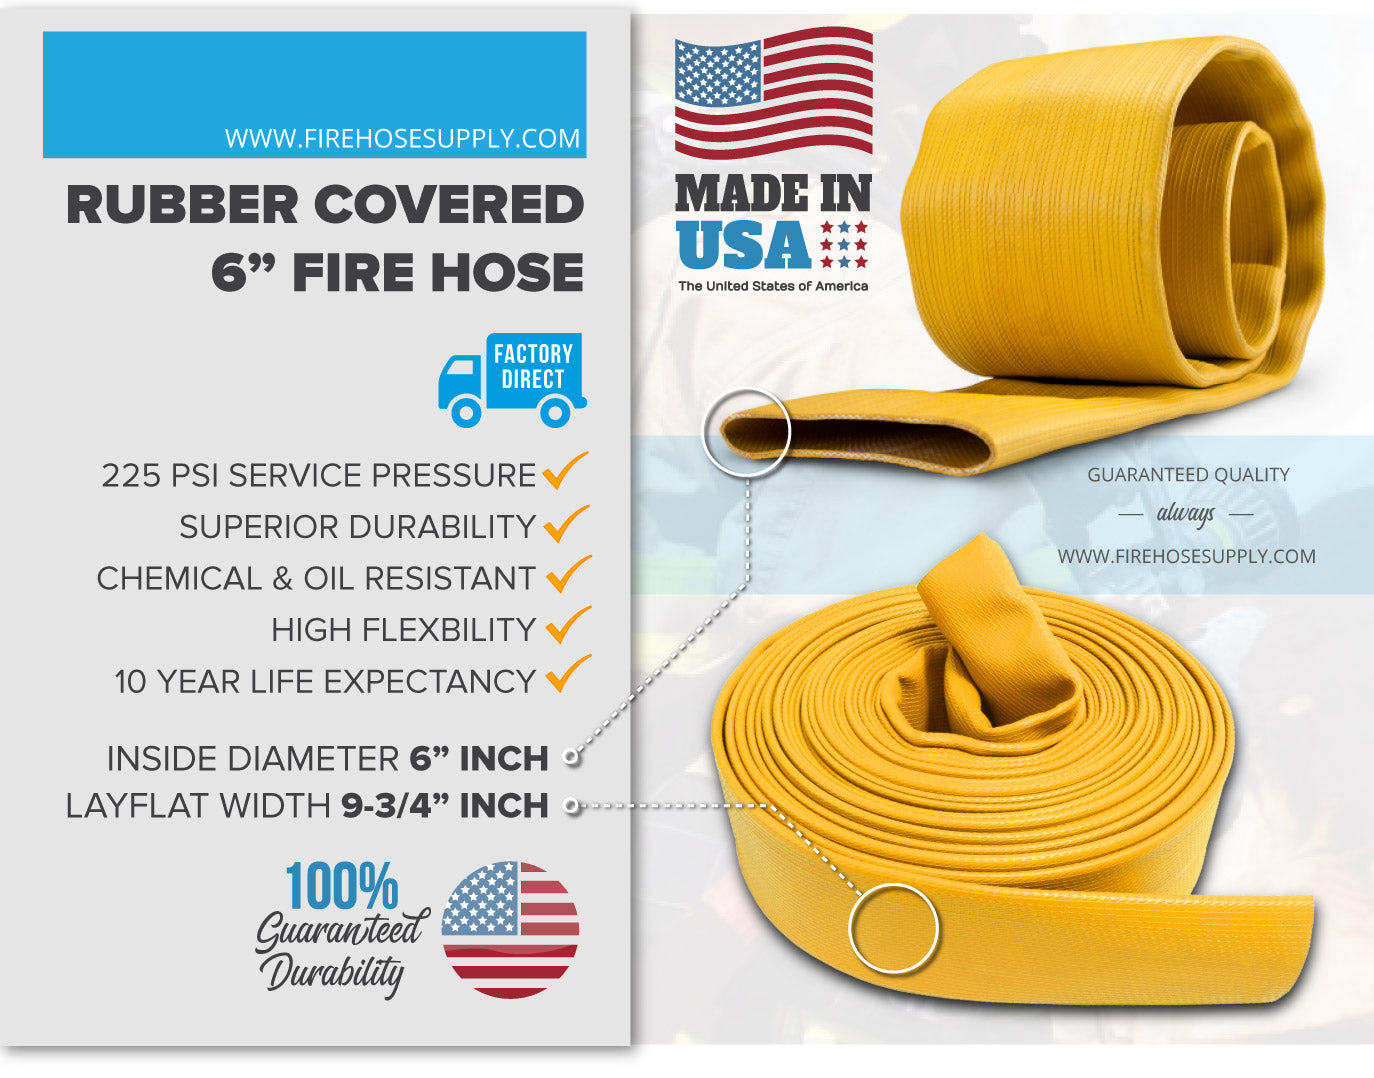 6 Inch Rubber Fire Hose Material Yellow No Fittings 225 PSI